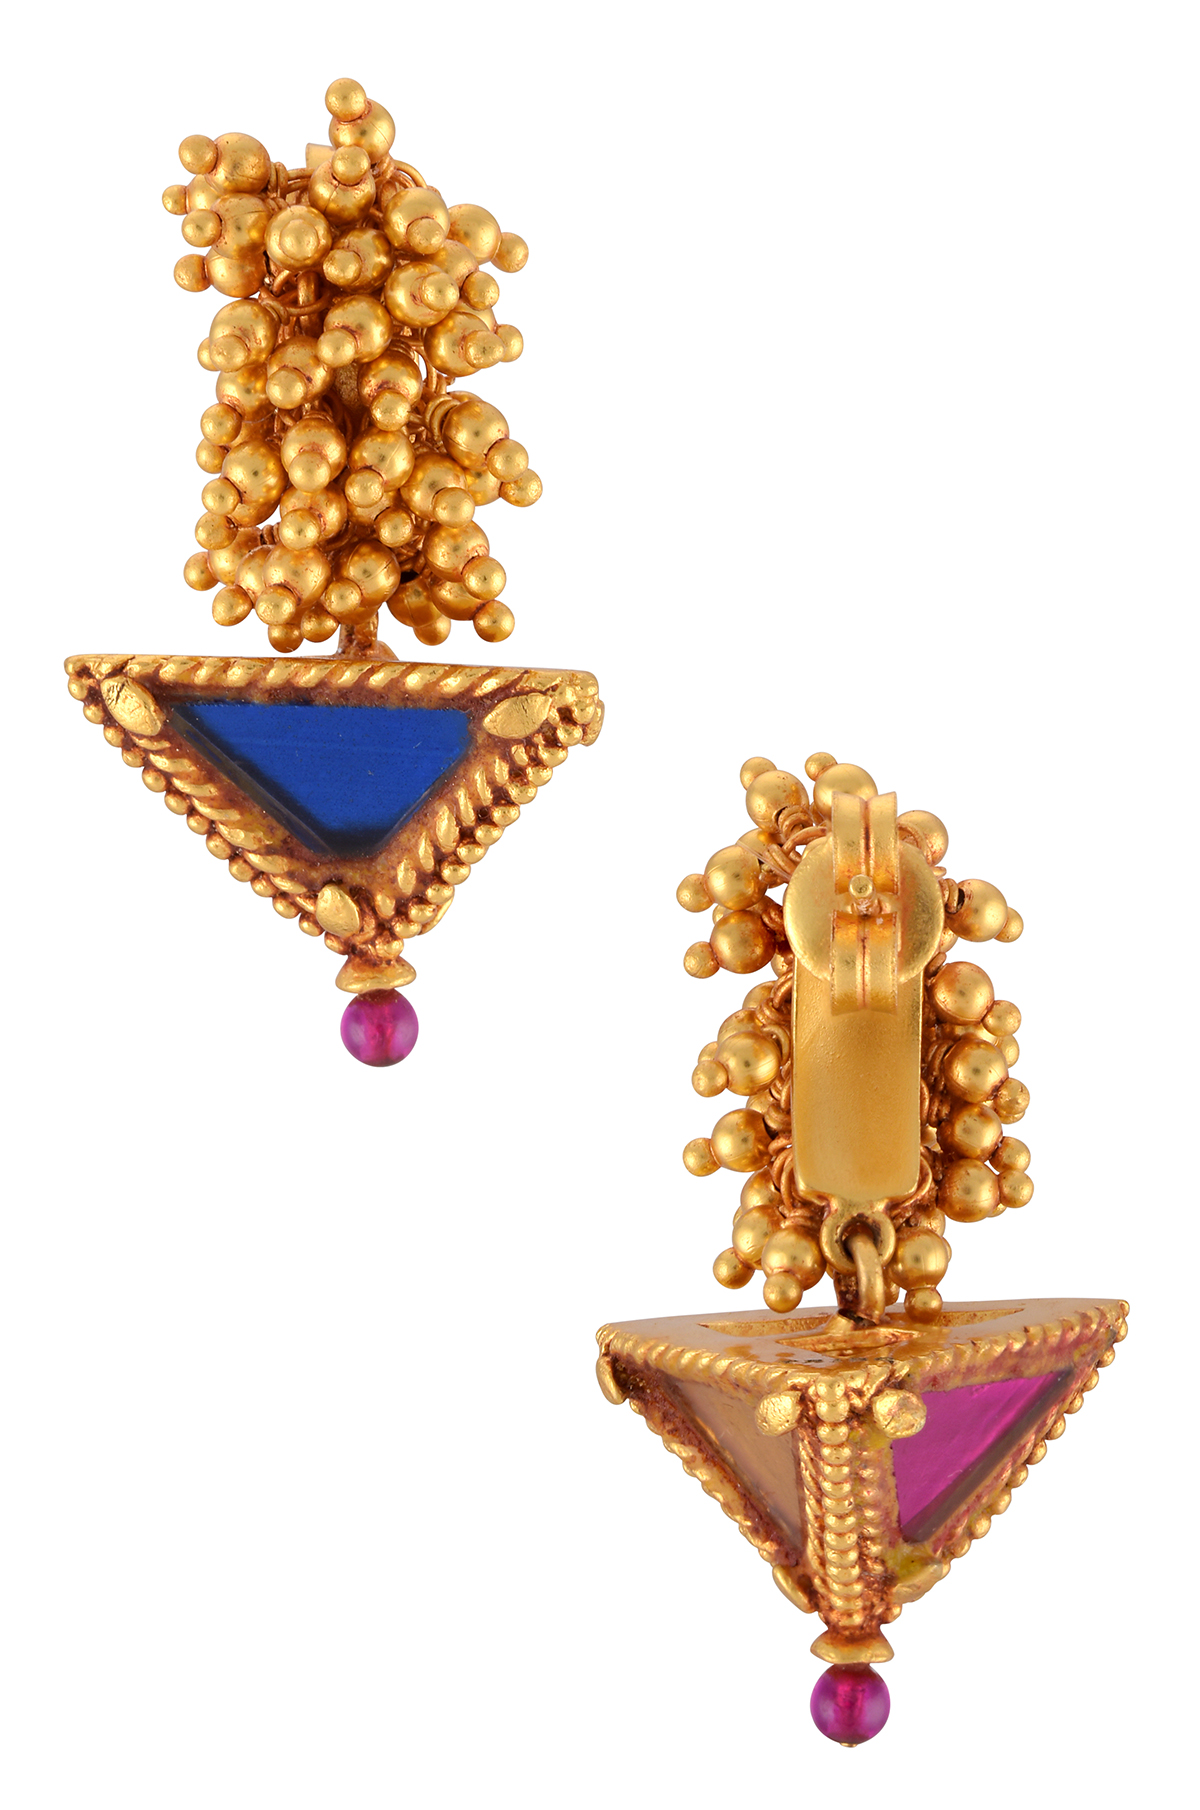 Gold Plated Colored Glass Pyramid Rawa Cluster Earrings